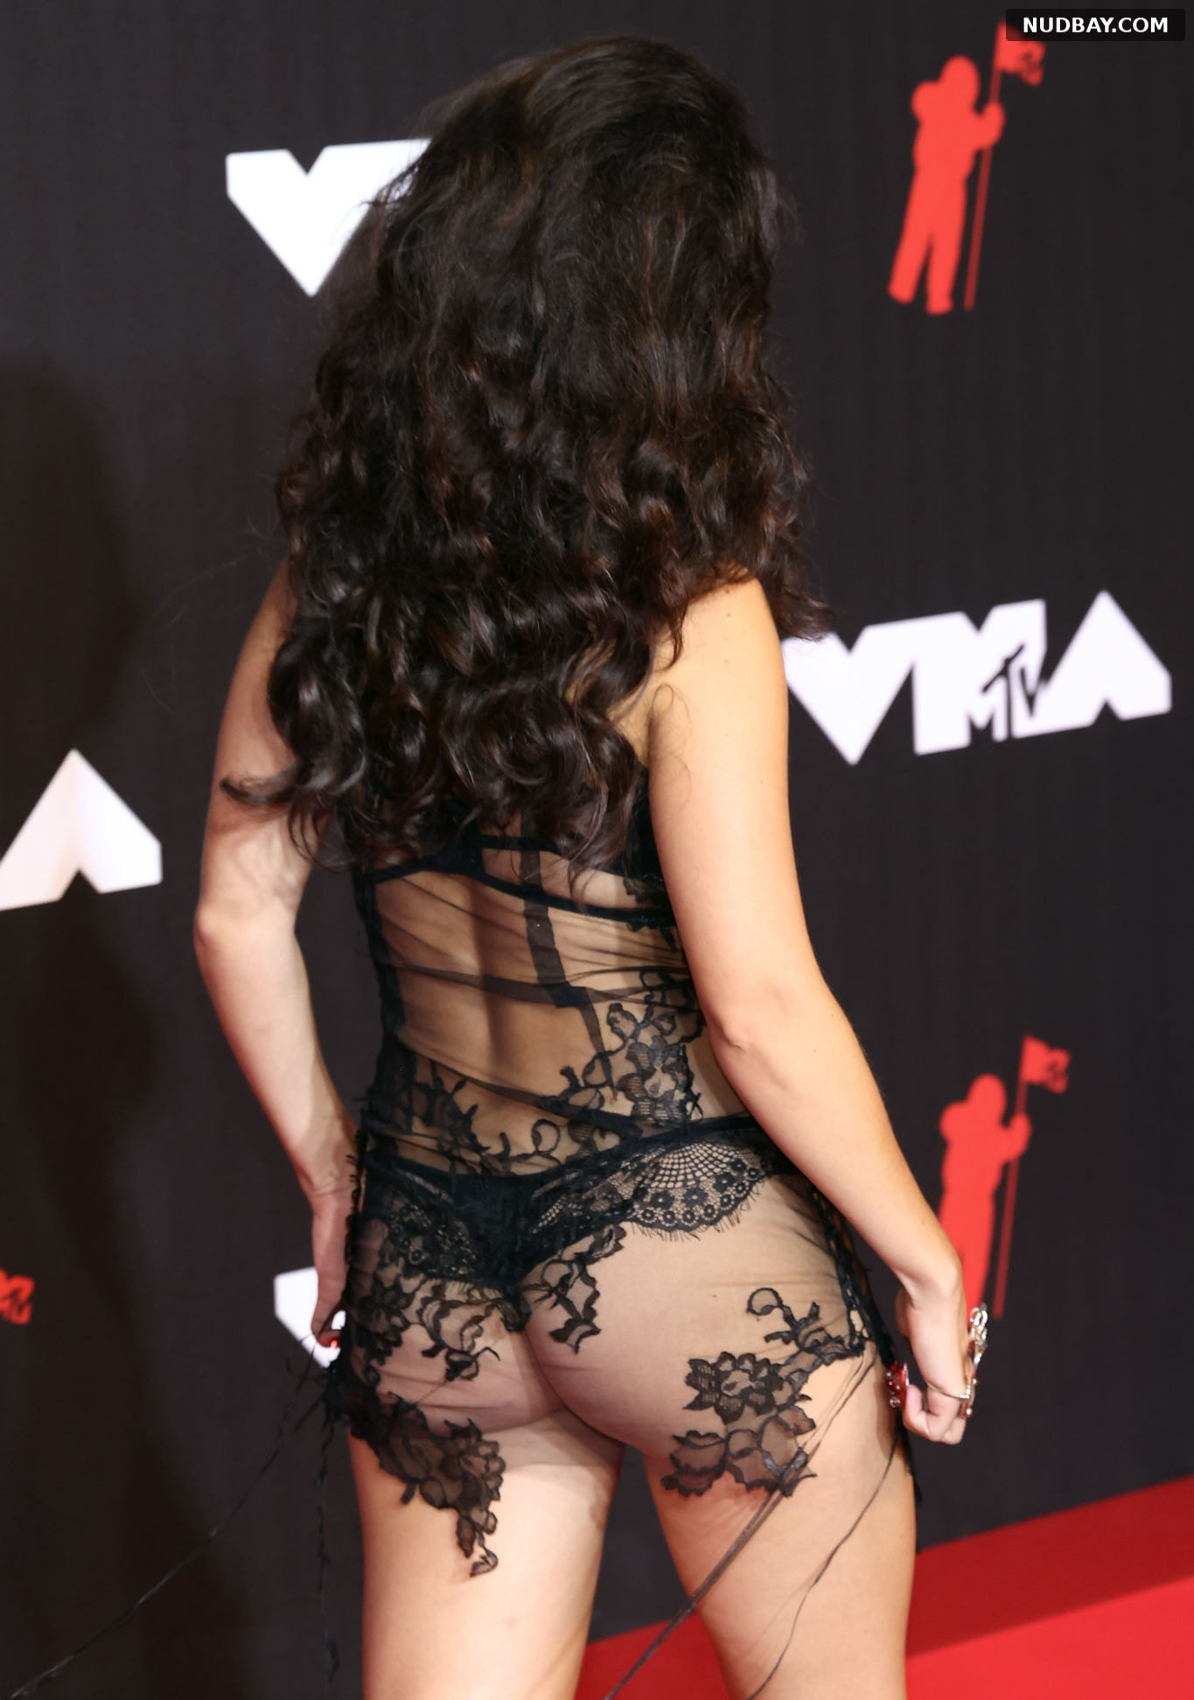 Charli XCX Nude at MTV Video Music Awards in New York Sep 12 2021